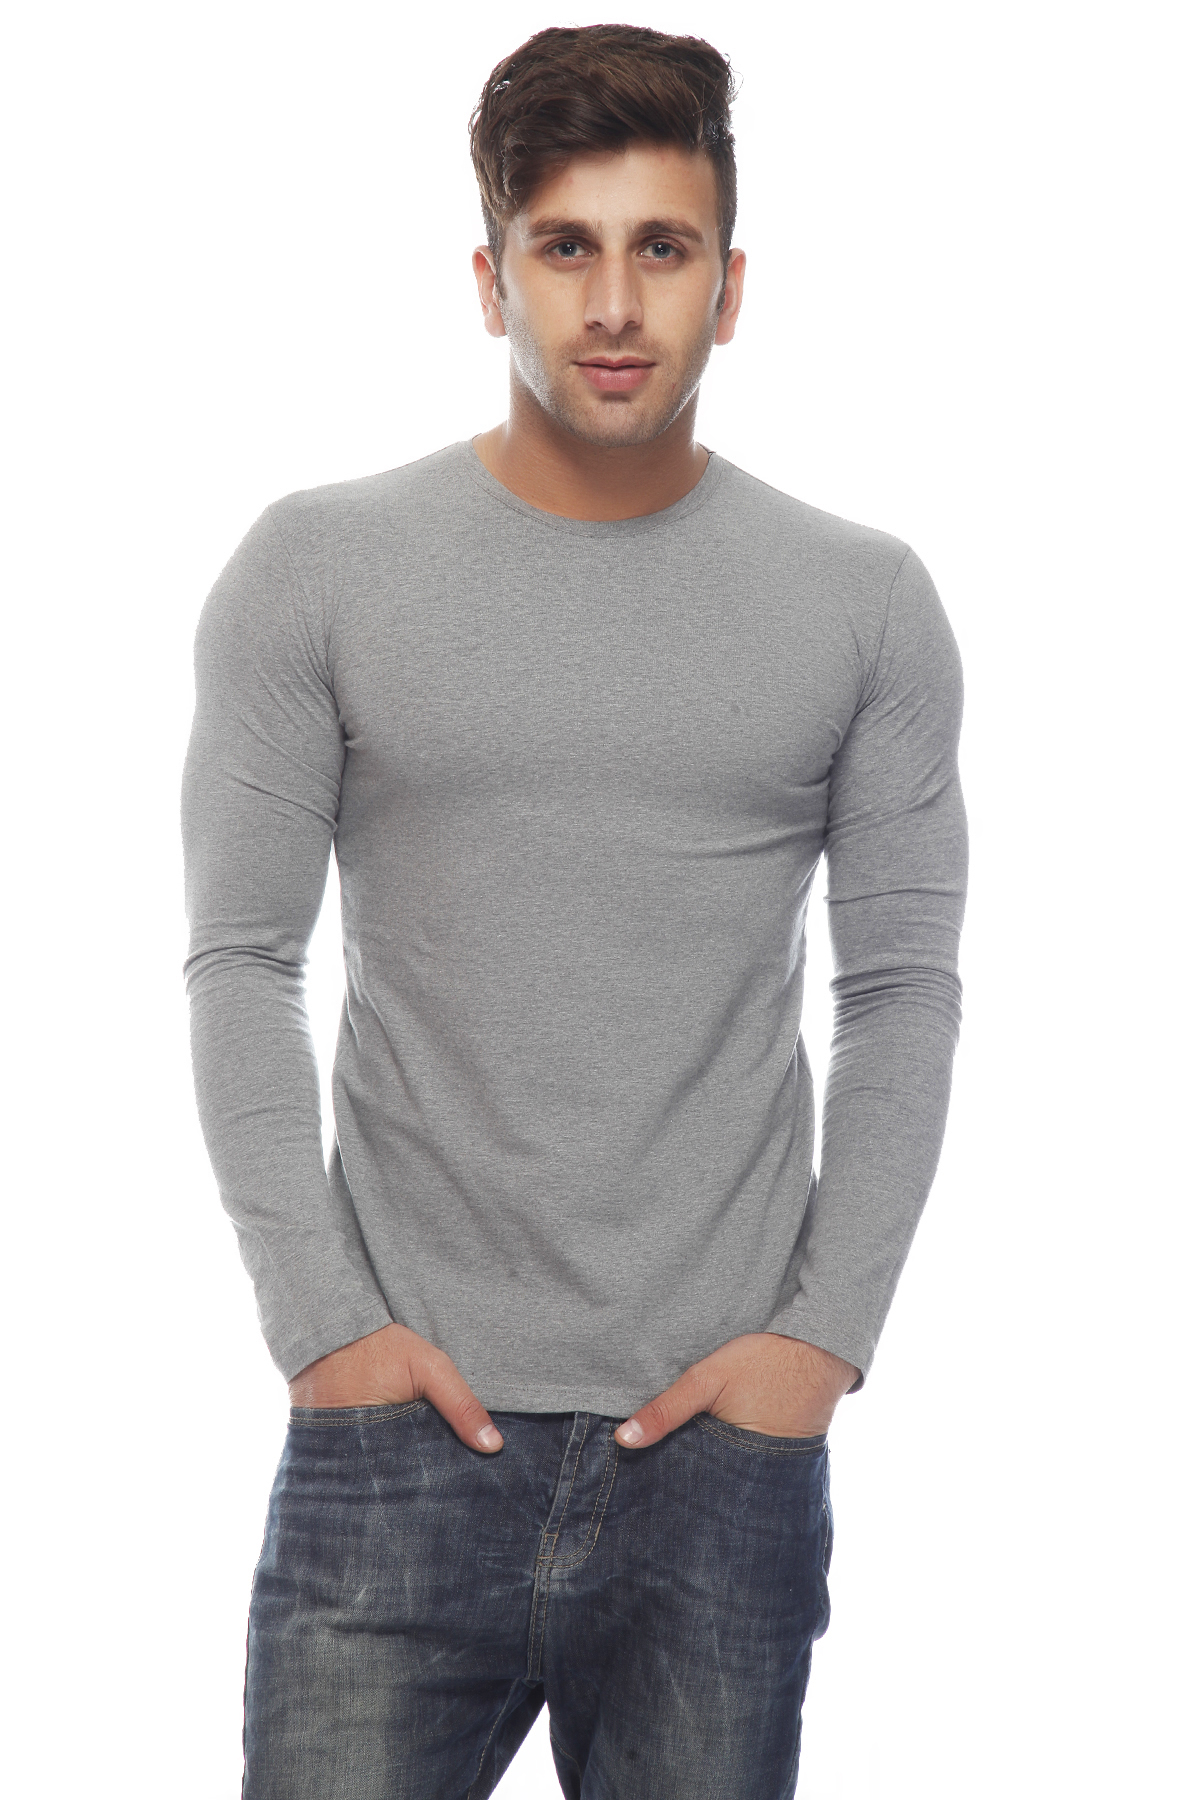 DS Grey Cotton Full Sleeves Regular Fit Polo T-shirt